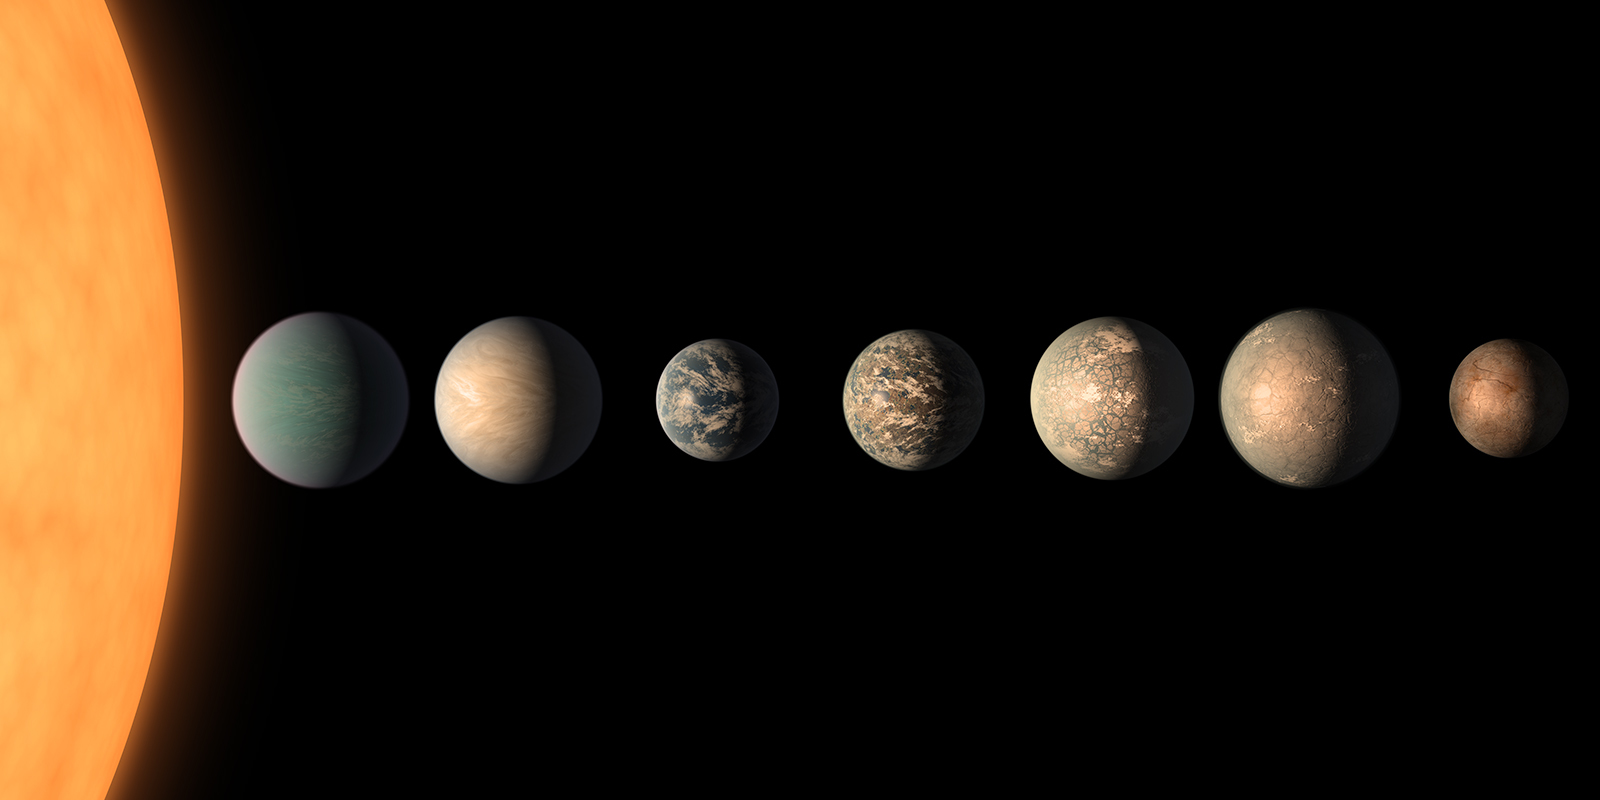 Planeten clipart terrestrial planet. Largest batch of earth